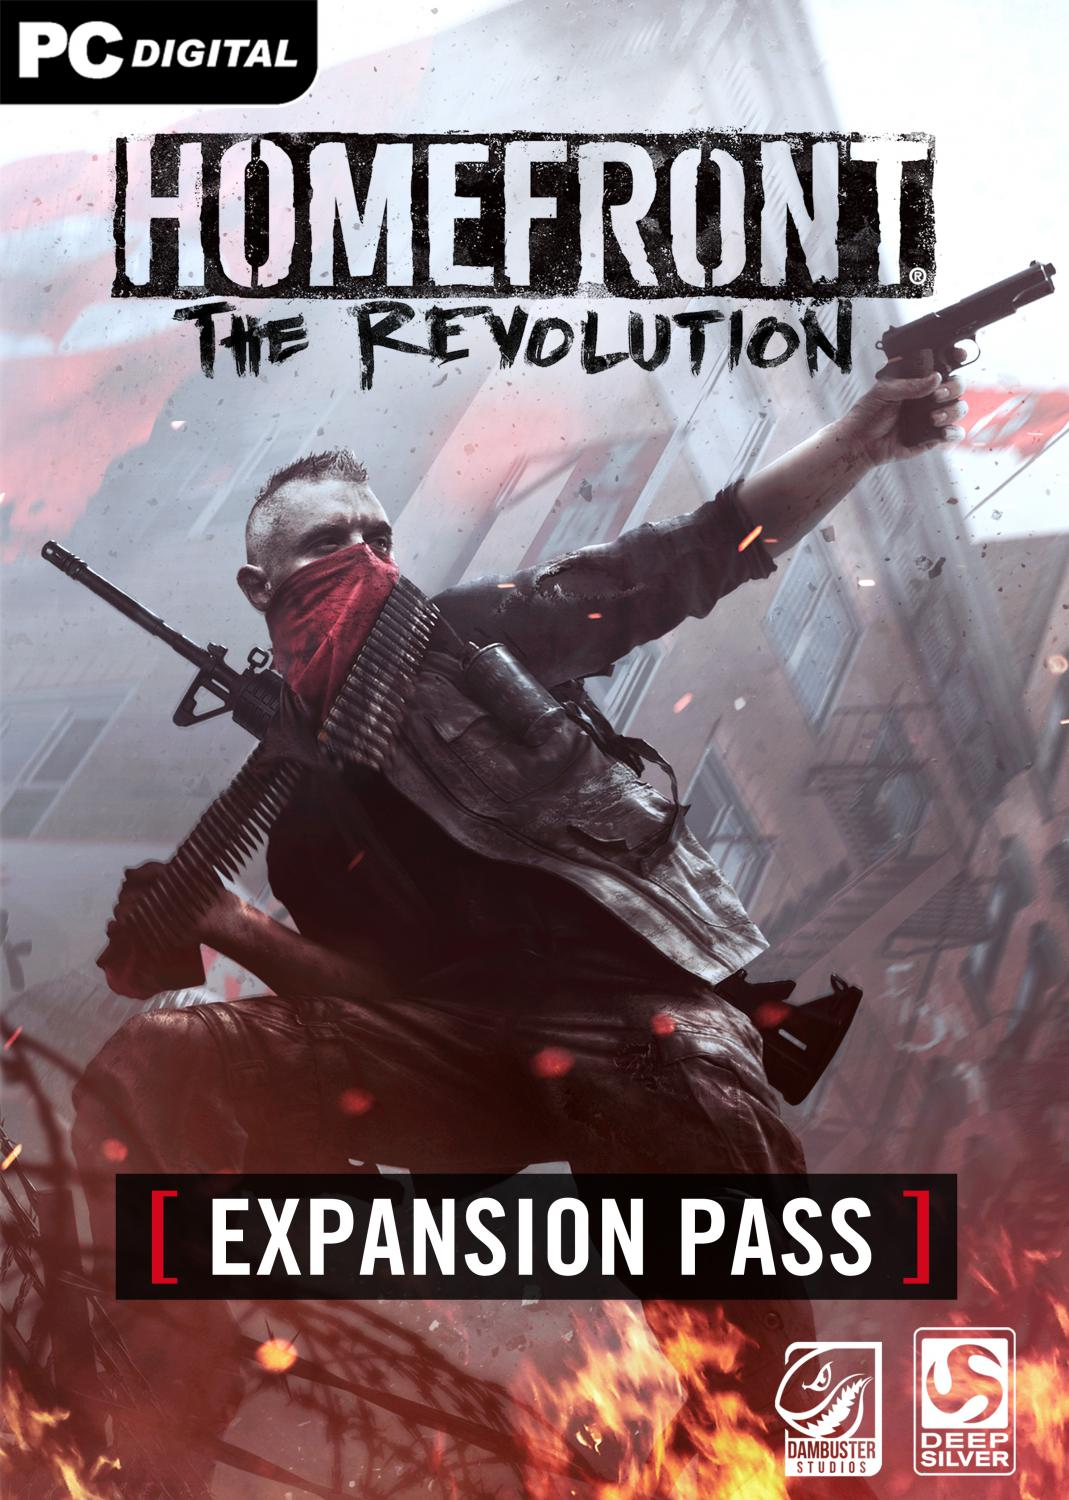 Picture of The Homefront®: The Revolution Expansion Pass - Homefront Video Game PNG